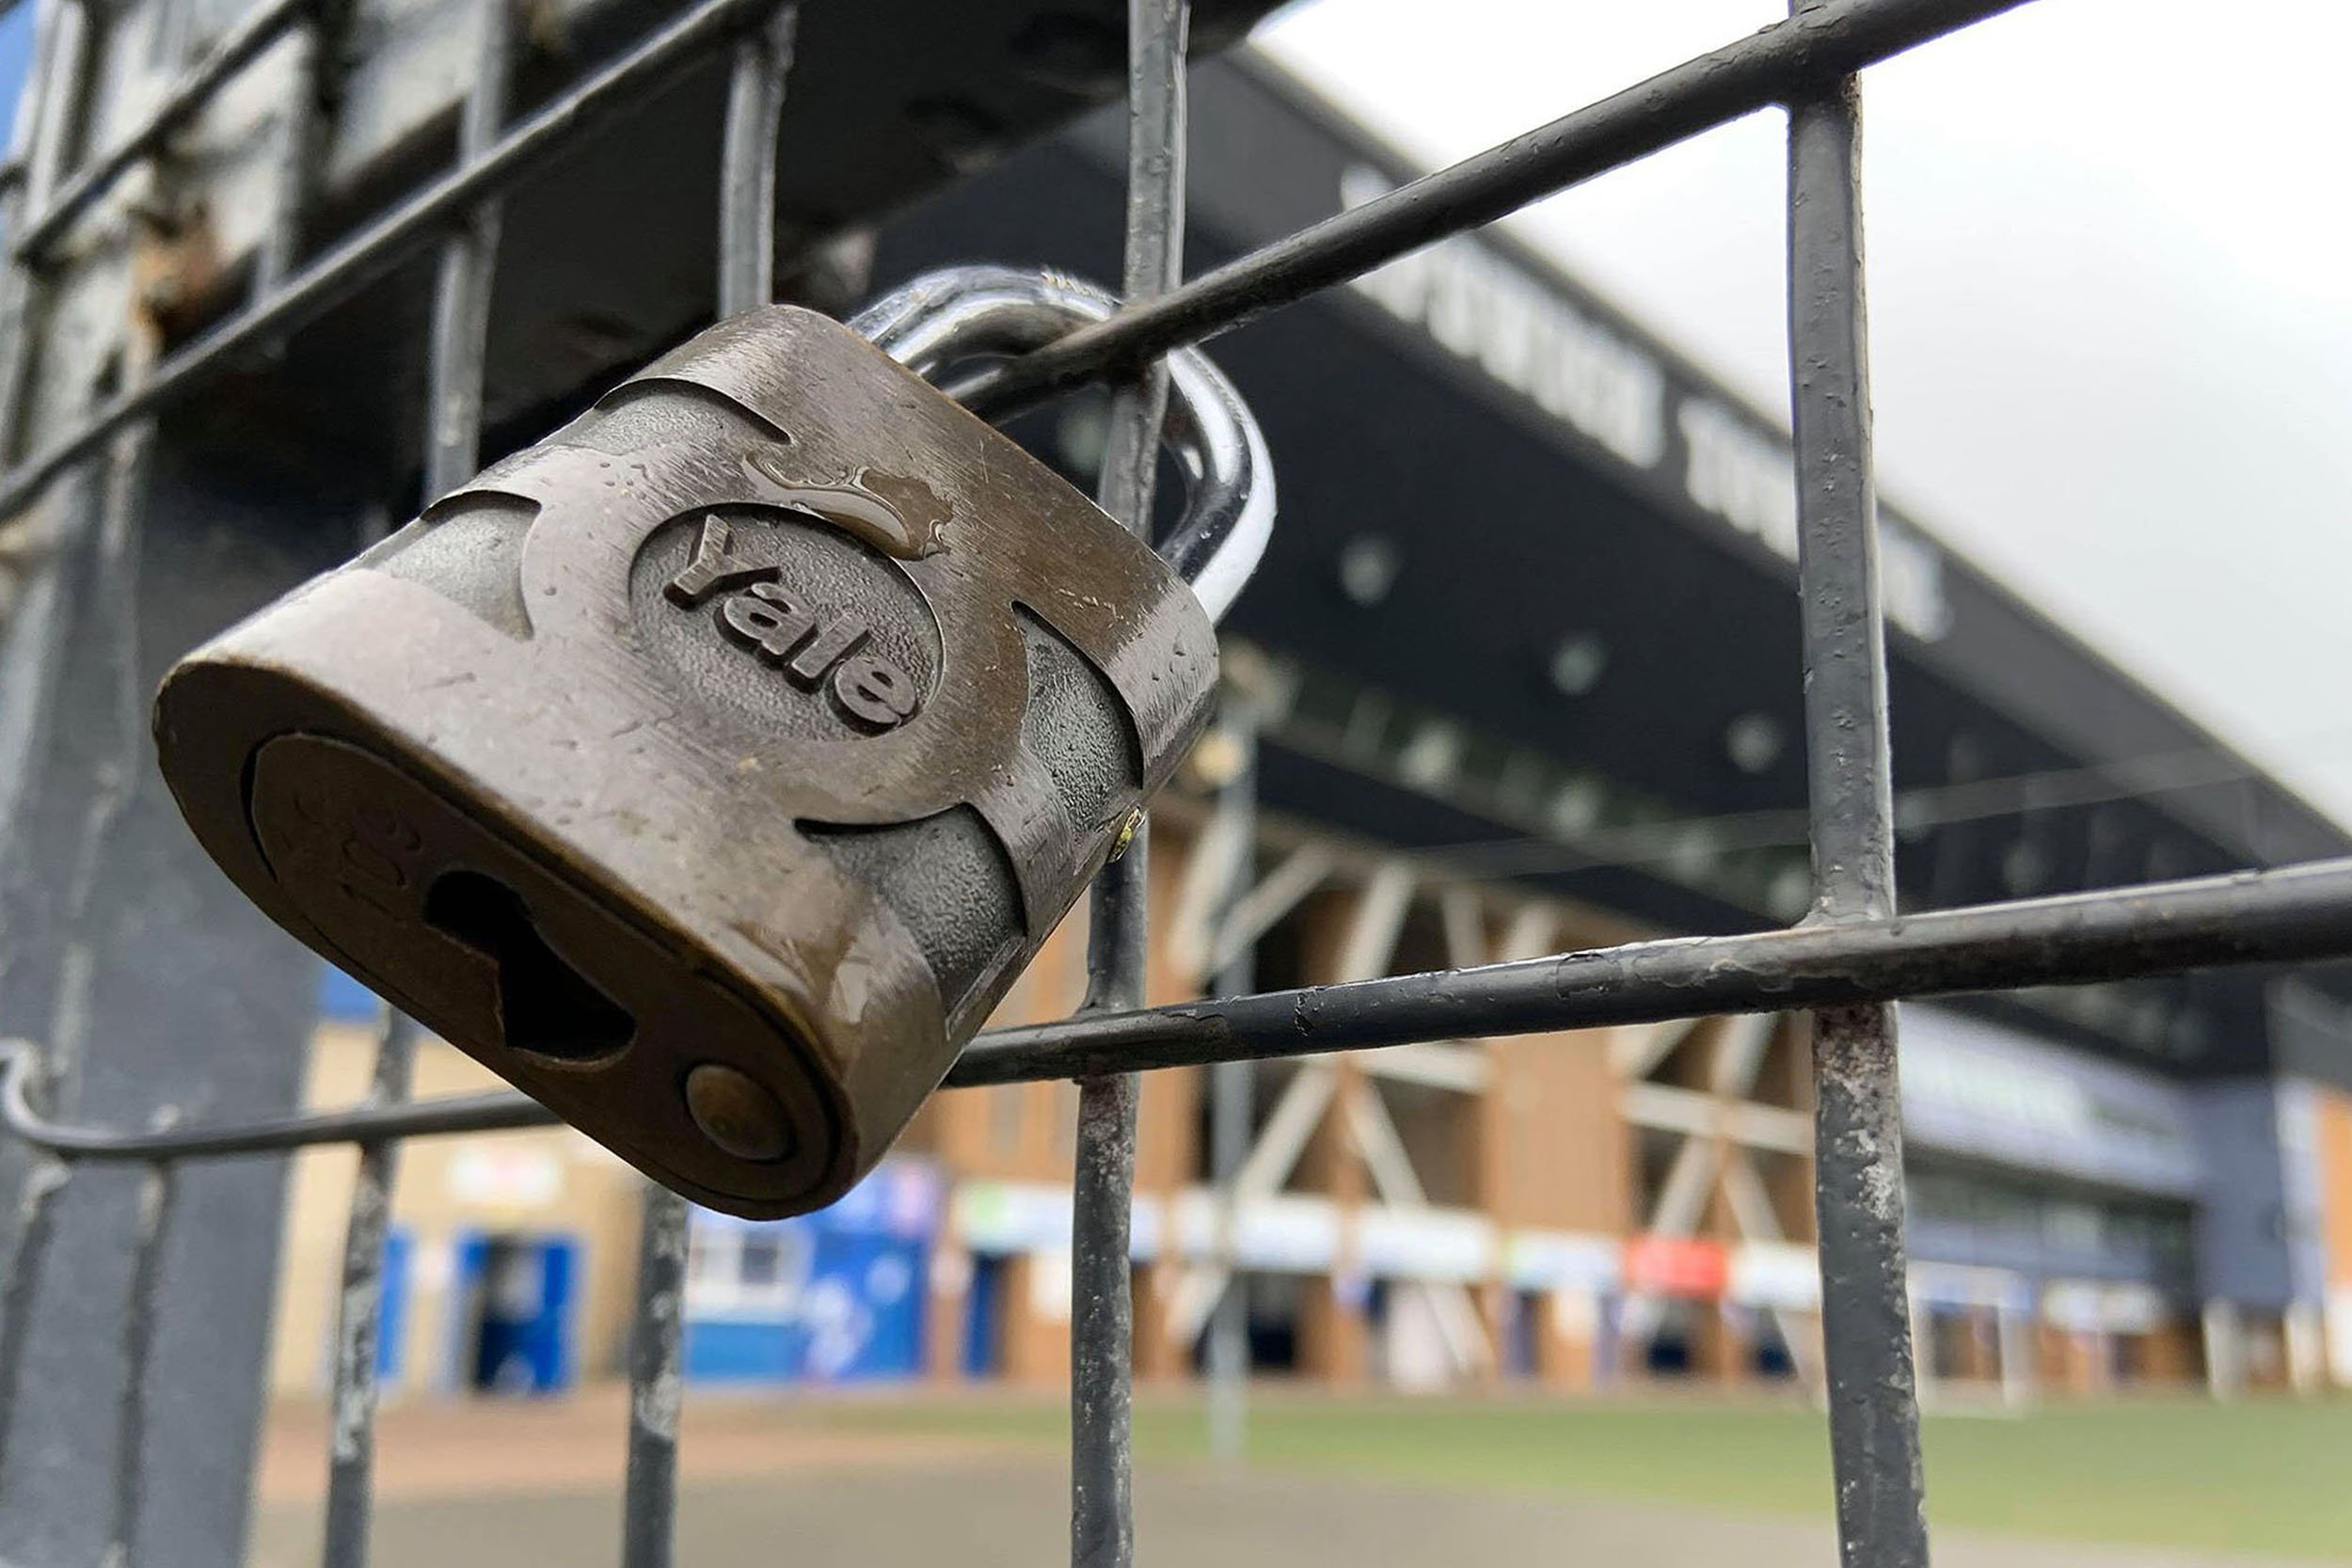 Sport in the UK and across Europe has been put into lockdown.